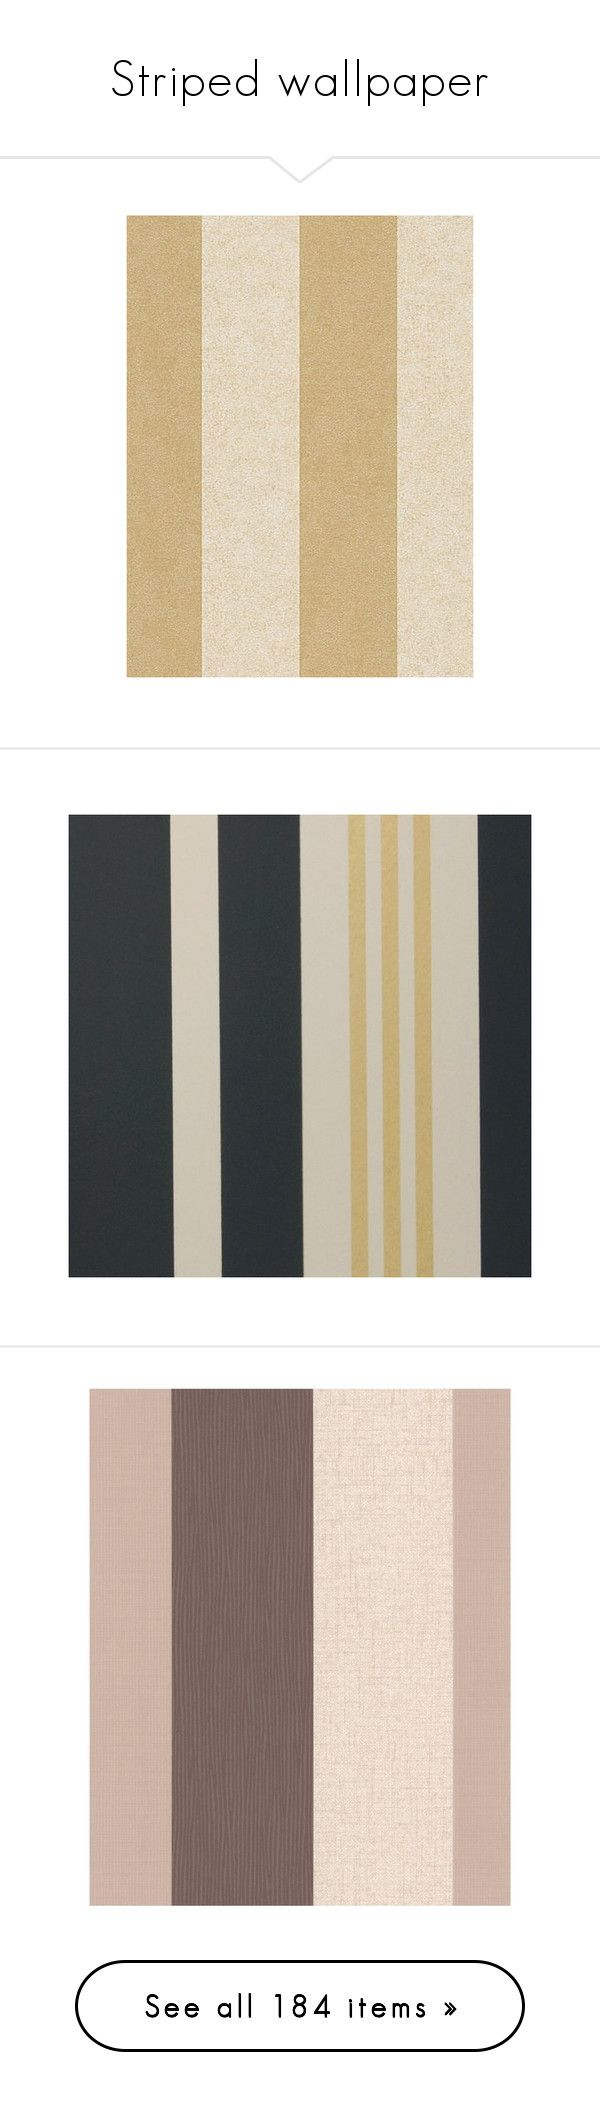 """""""Striped wallpaper"""" by lacie-nicole on Polyvore featuring home, home decor, wallpaper, beige, vinyl wallpaper, beige striped wallpaper, versace wallpaper, cream wallpaper, removing vinyl wallpaper and gold striped wallpaper"""